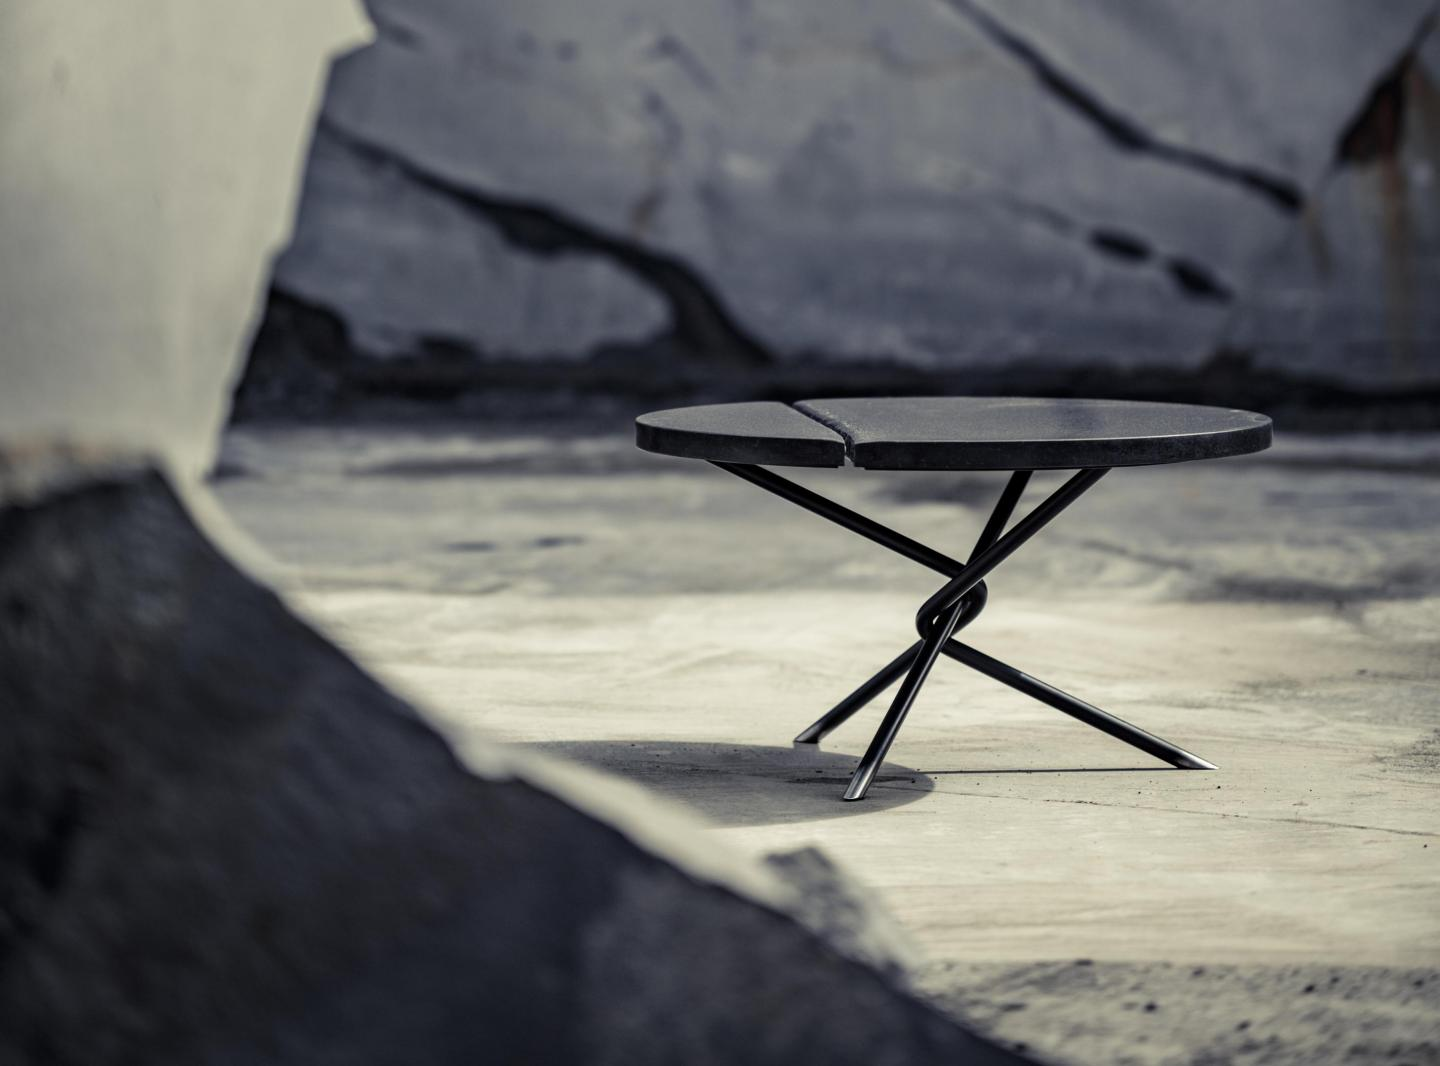 Balck coffee table surrounded by cliffs